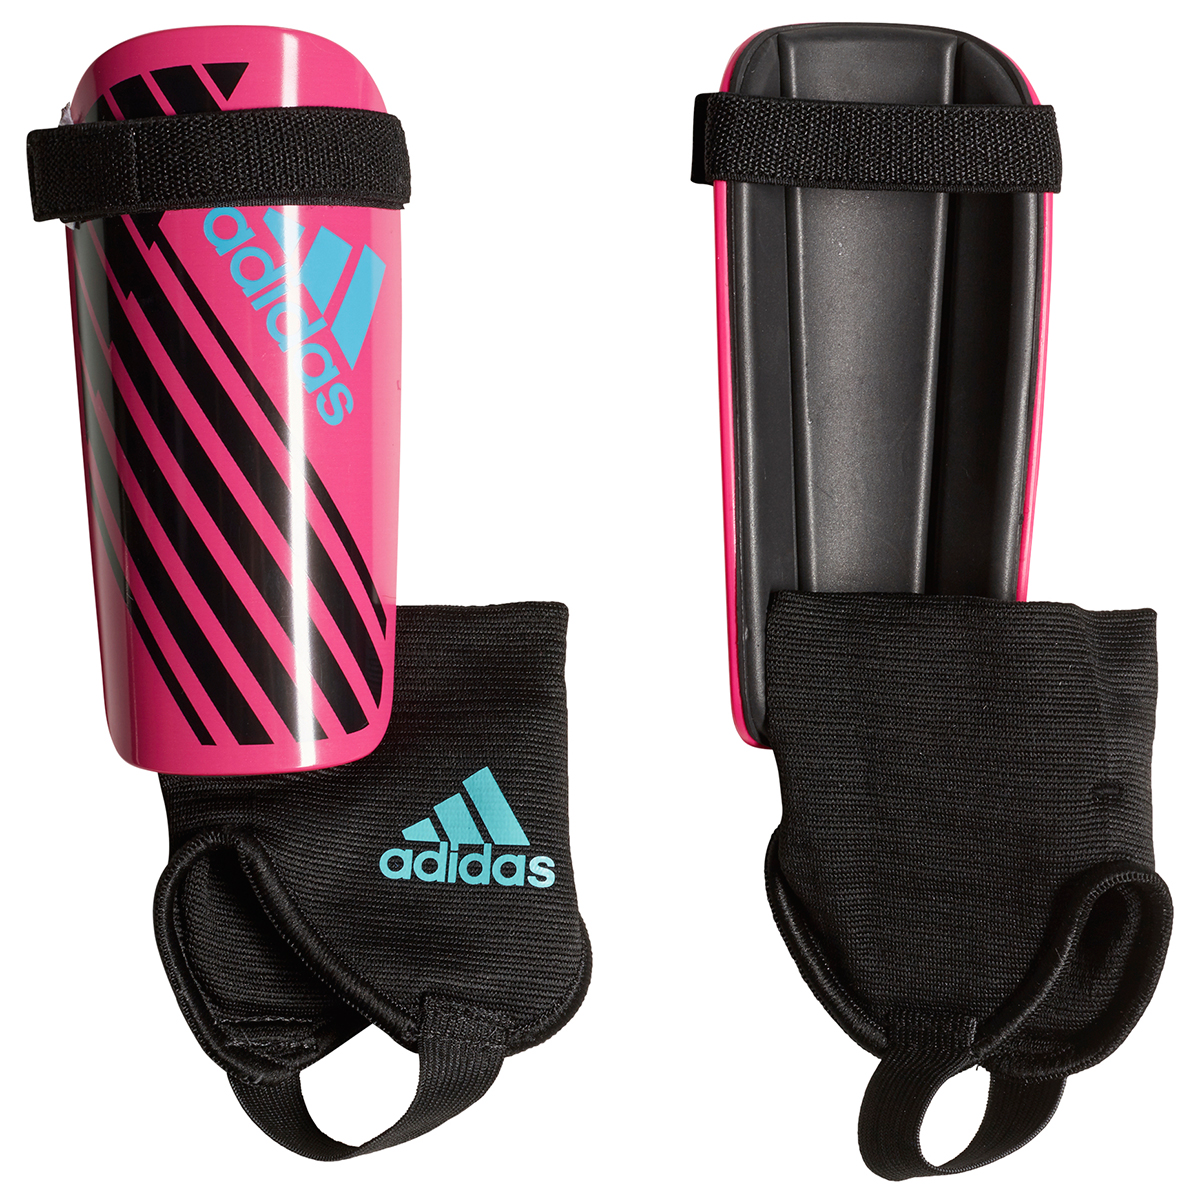 Adidas Girls' X Youth Shin Guards - Red, M